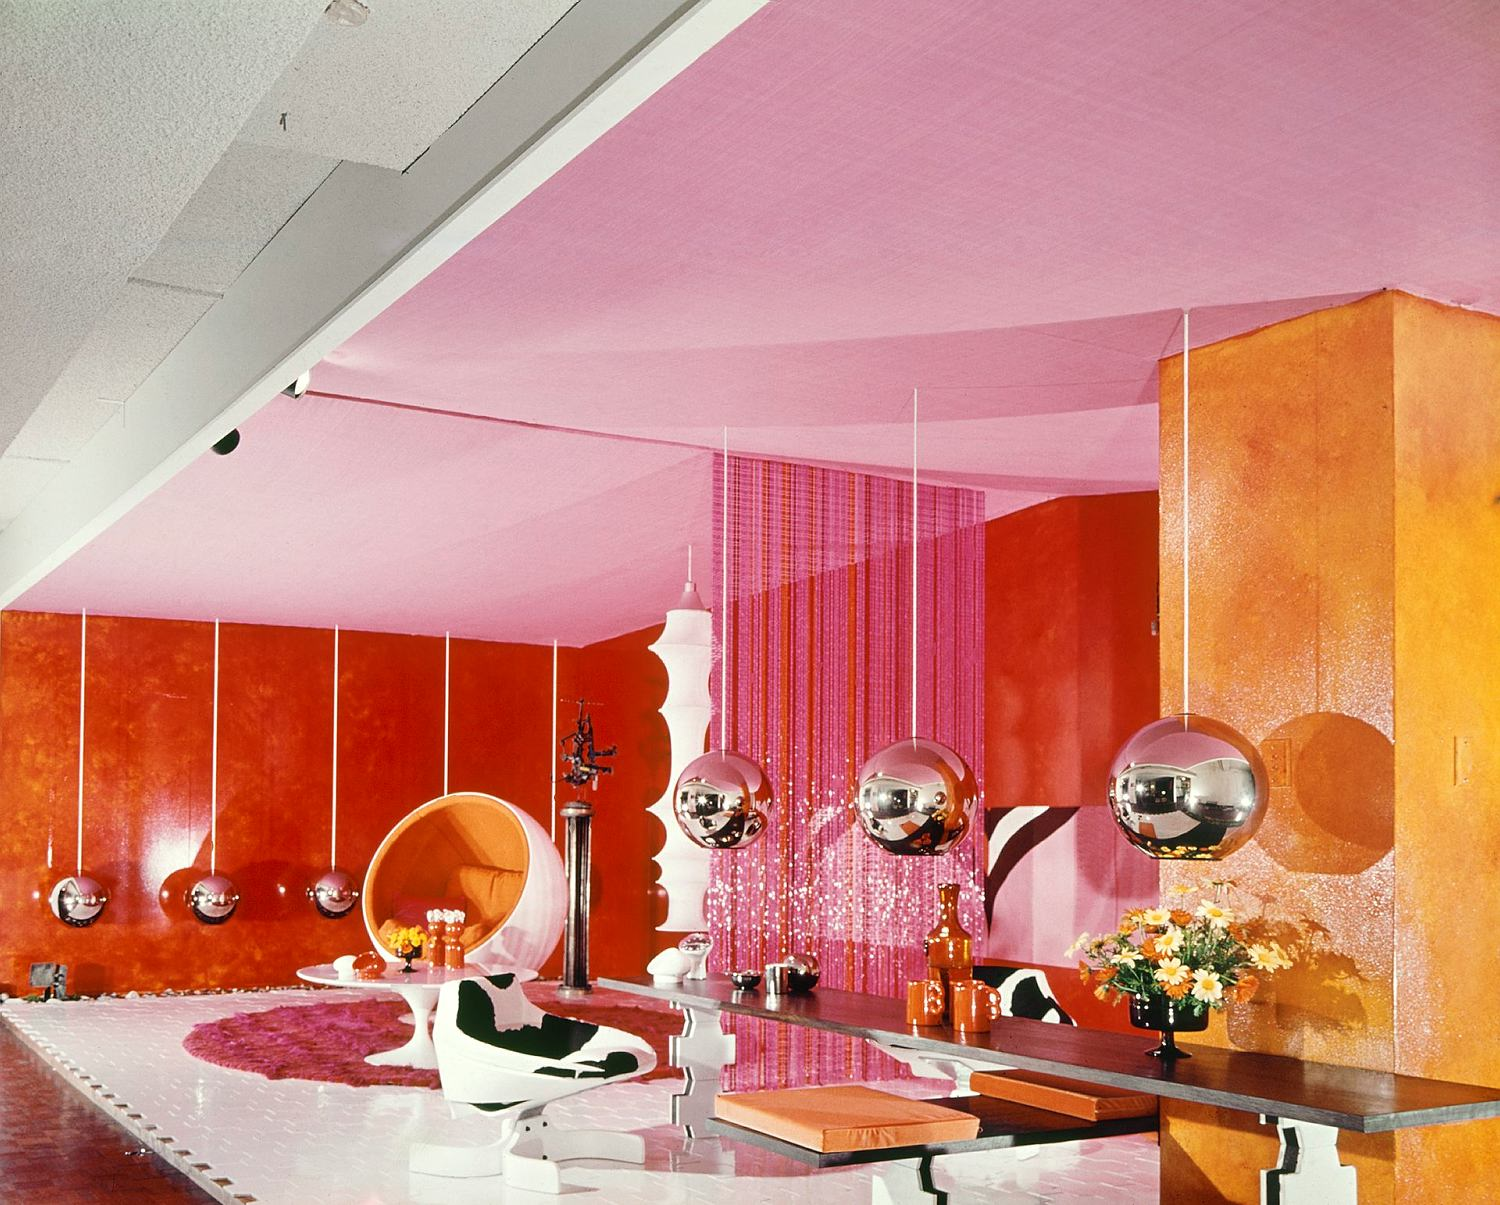 Marion hall best collection sydney living museums for Interior design 70s house